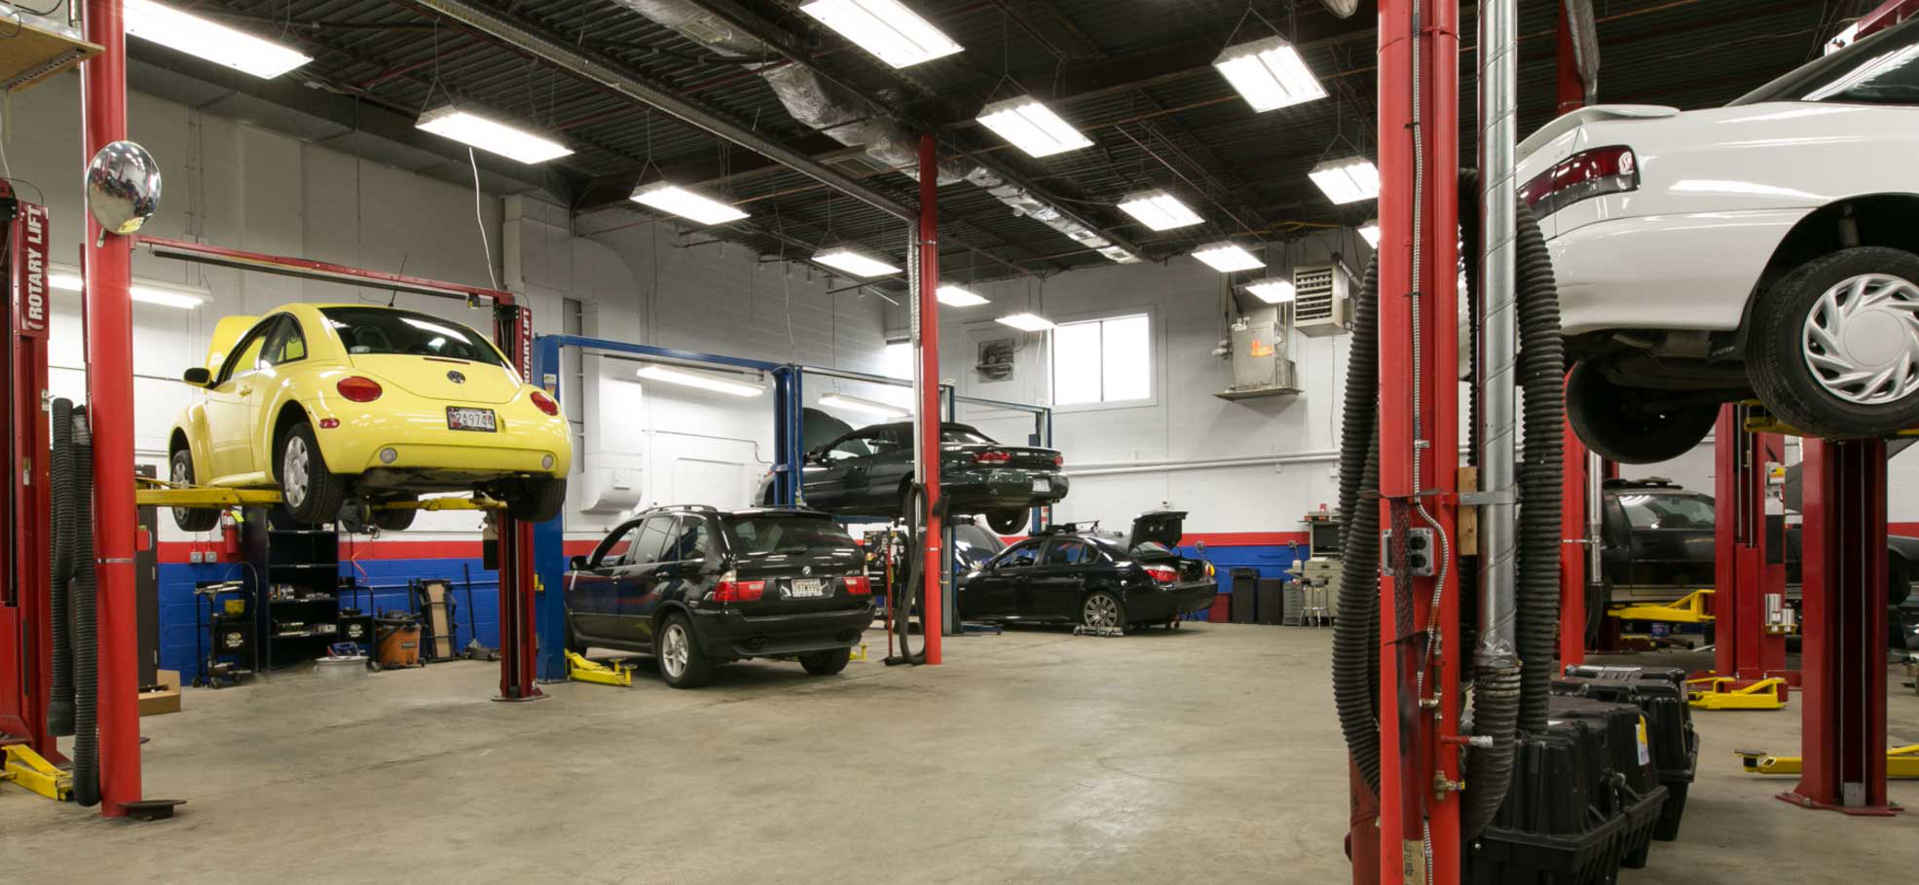 Auto Shop Big Clean Bright And Great Prominent Location